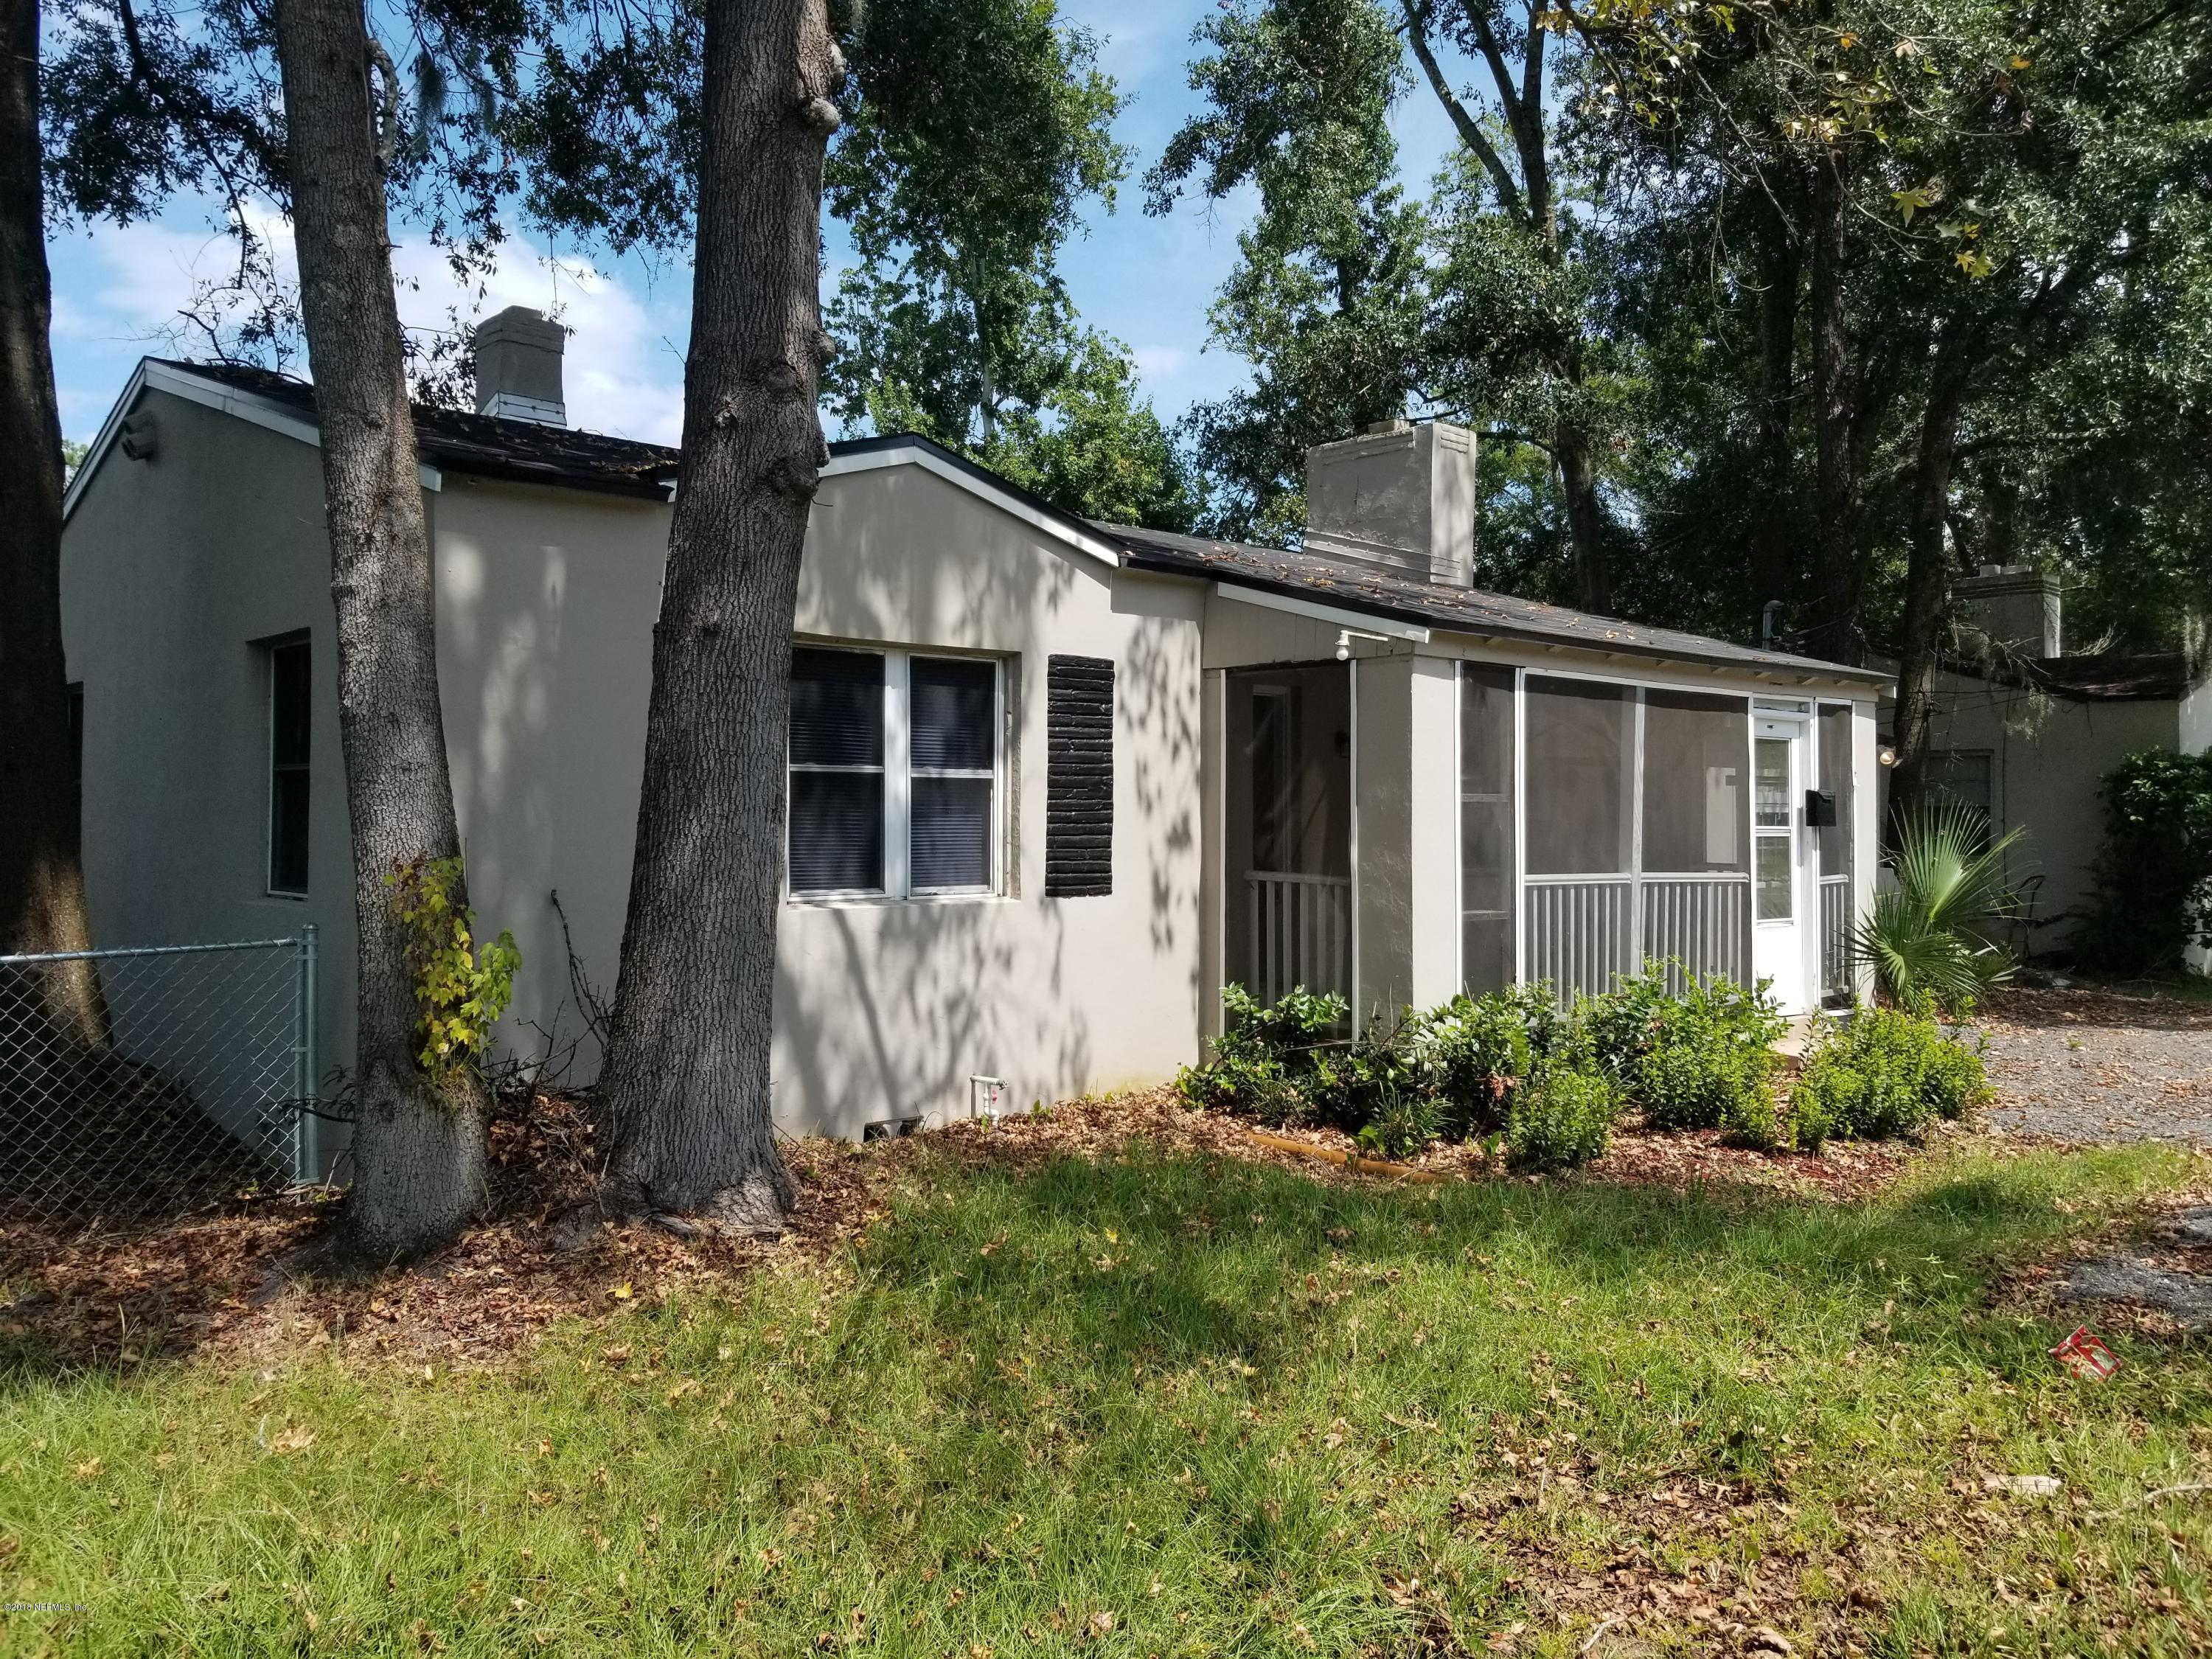 4653 TIMUQUANA, JACKSONVILLE, FLORIDA 32210, 3 Bedrooms Bedrooms, ,1 BathroomBathrooms,Residential - single family,For sale,TIMUQUANA,957995